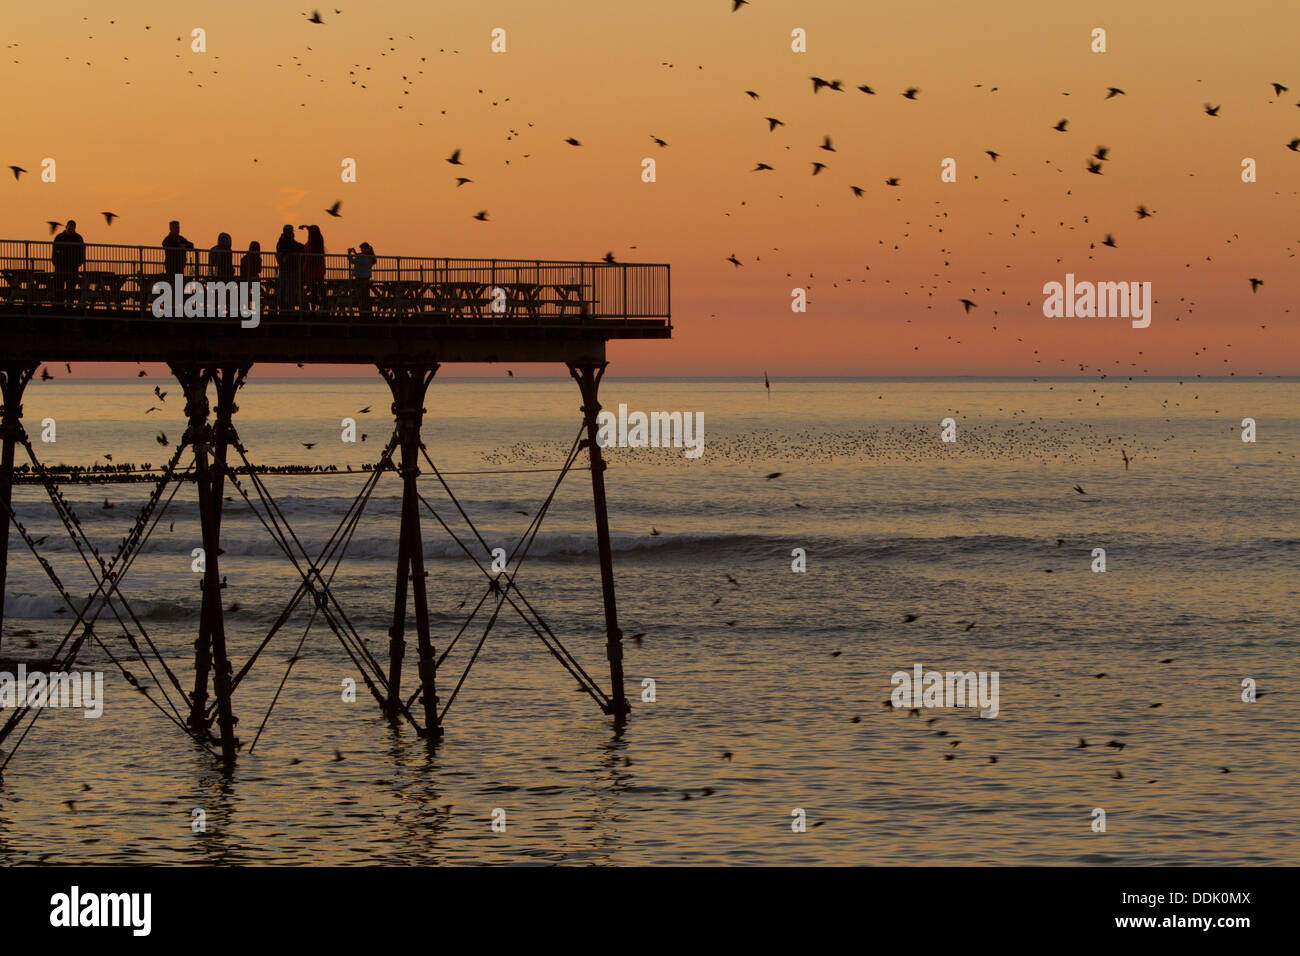 Common Starling (Sturnus vulgaris) flock in flight and roosting on the pier at sunset. Aberystwyth, Ceredigion, Stock Photo